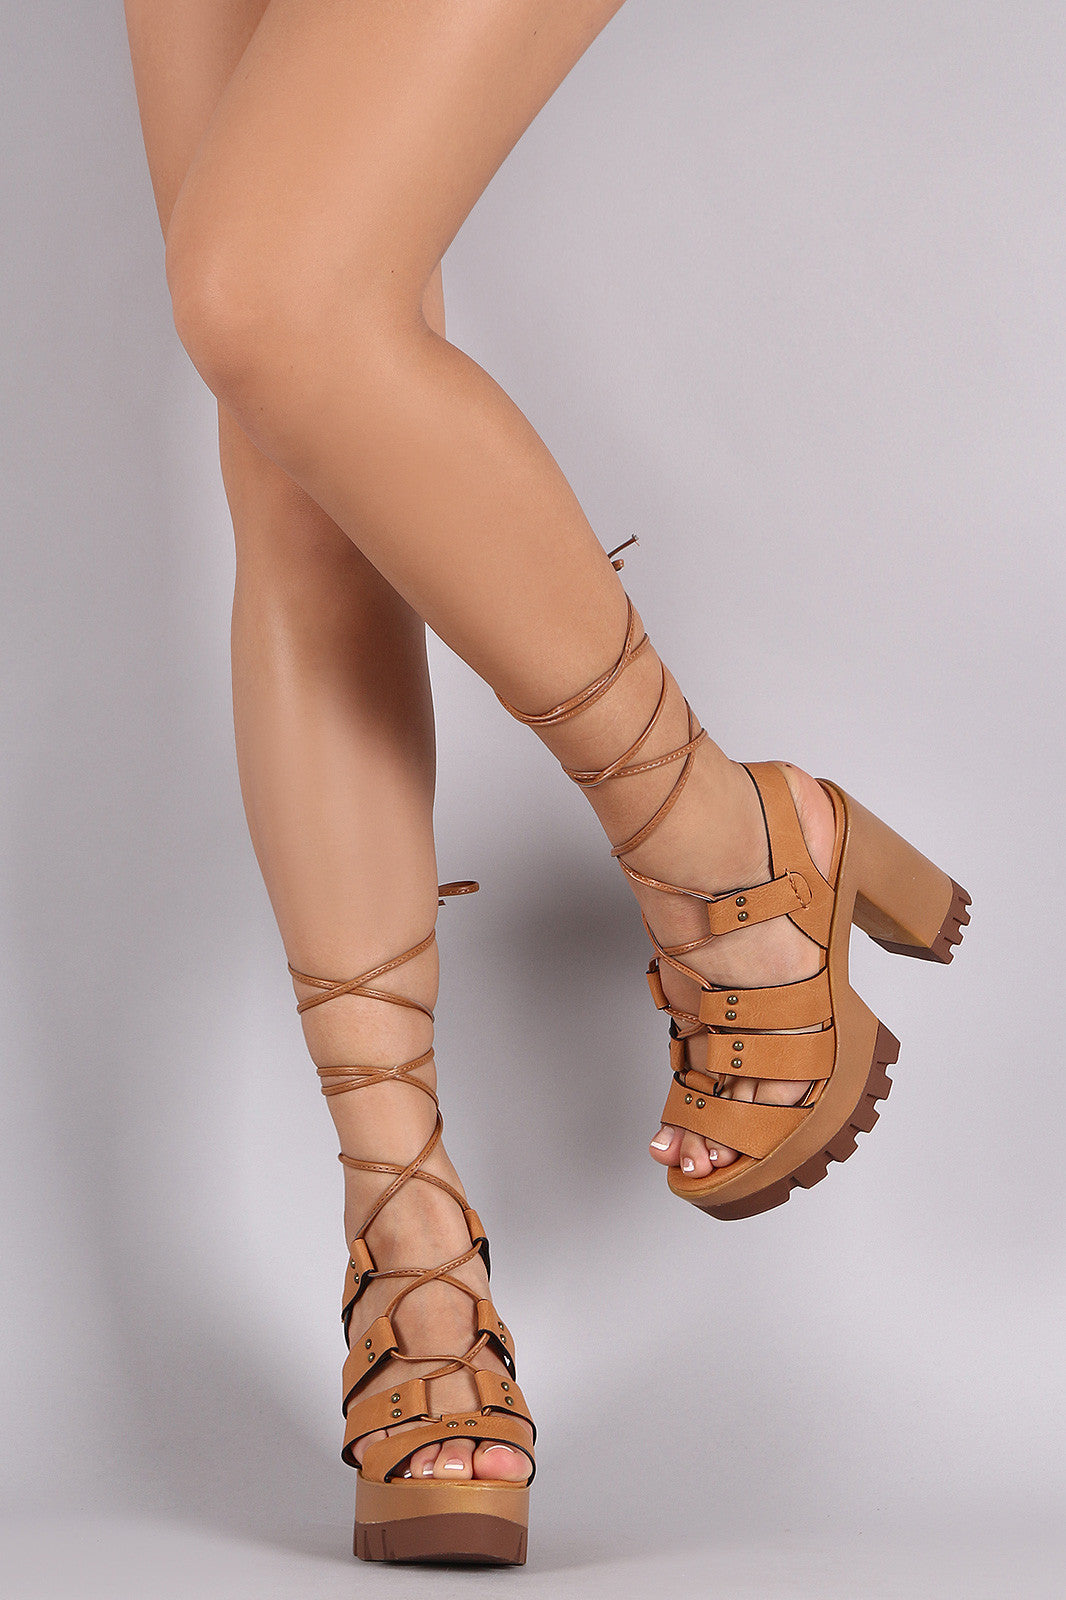 Wild Diva Lounge Strappy Lace-Up Lug Sole Platform Heel - Thick 'N' Curvy Shop - 3